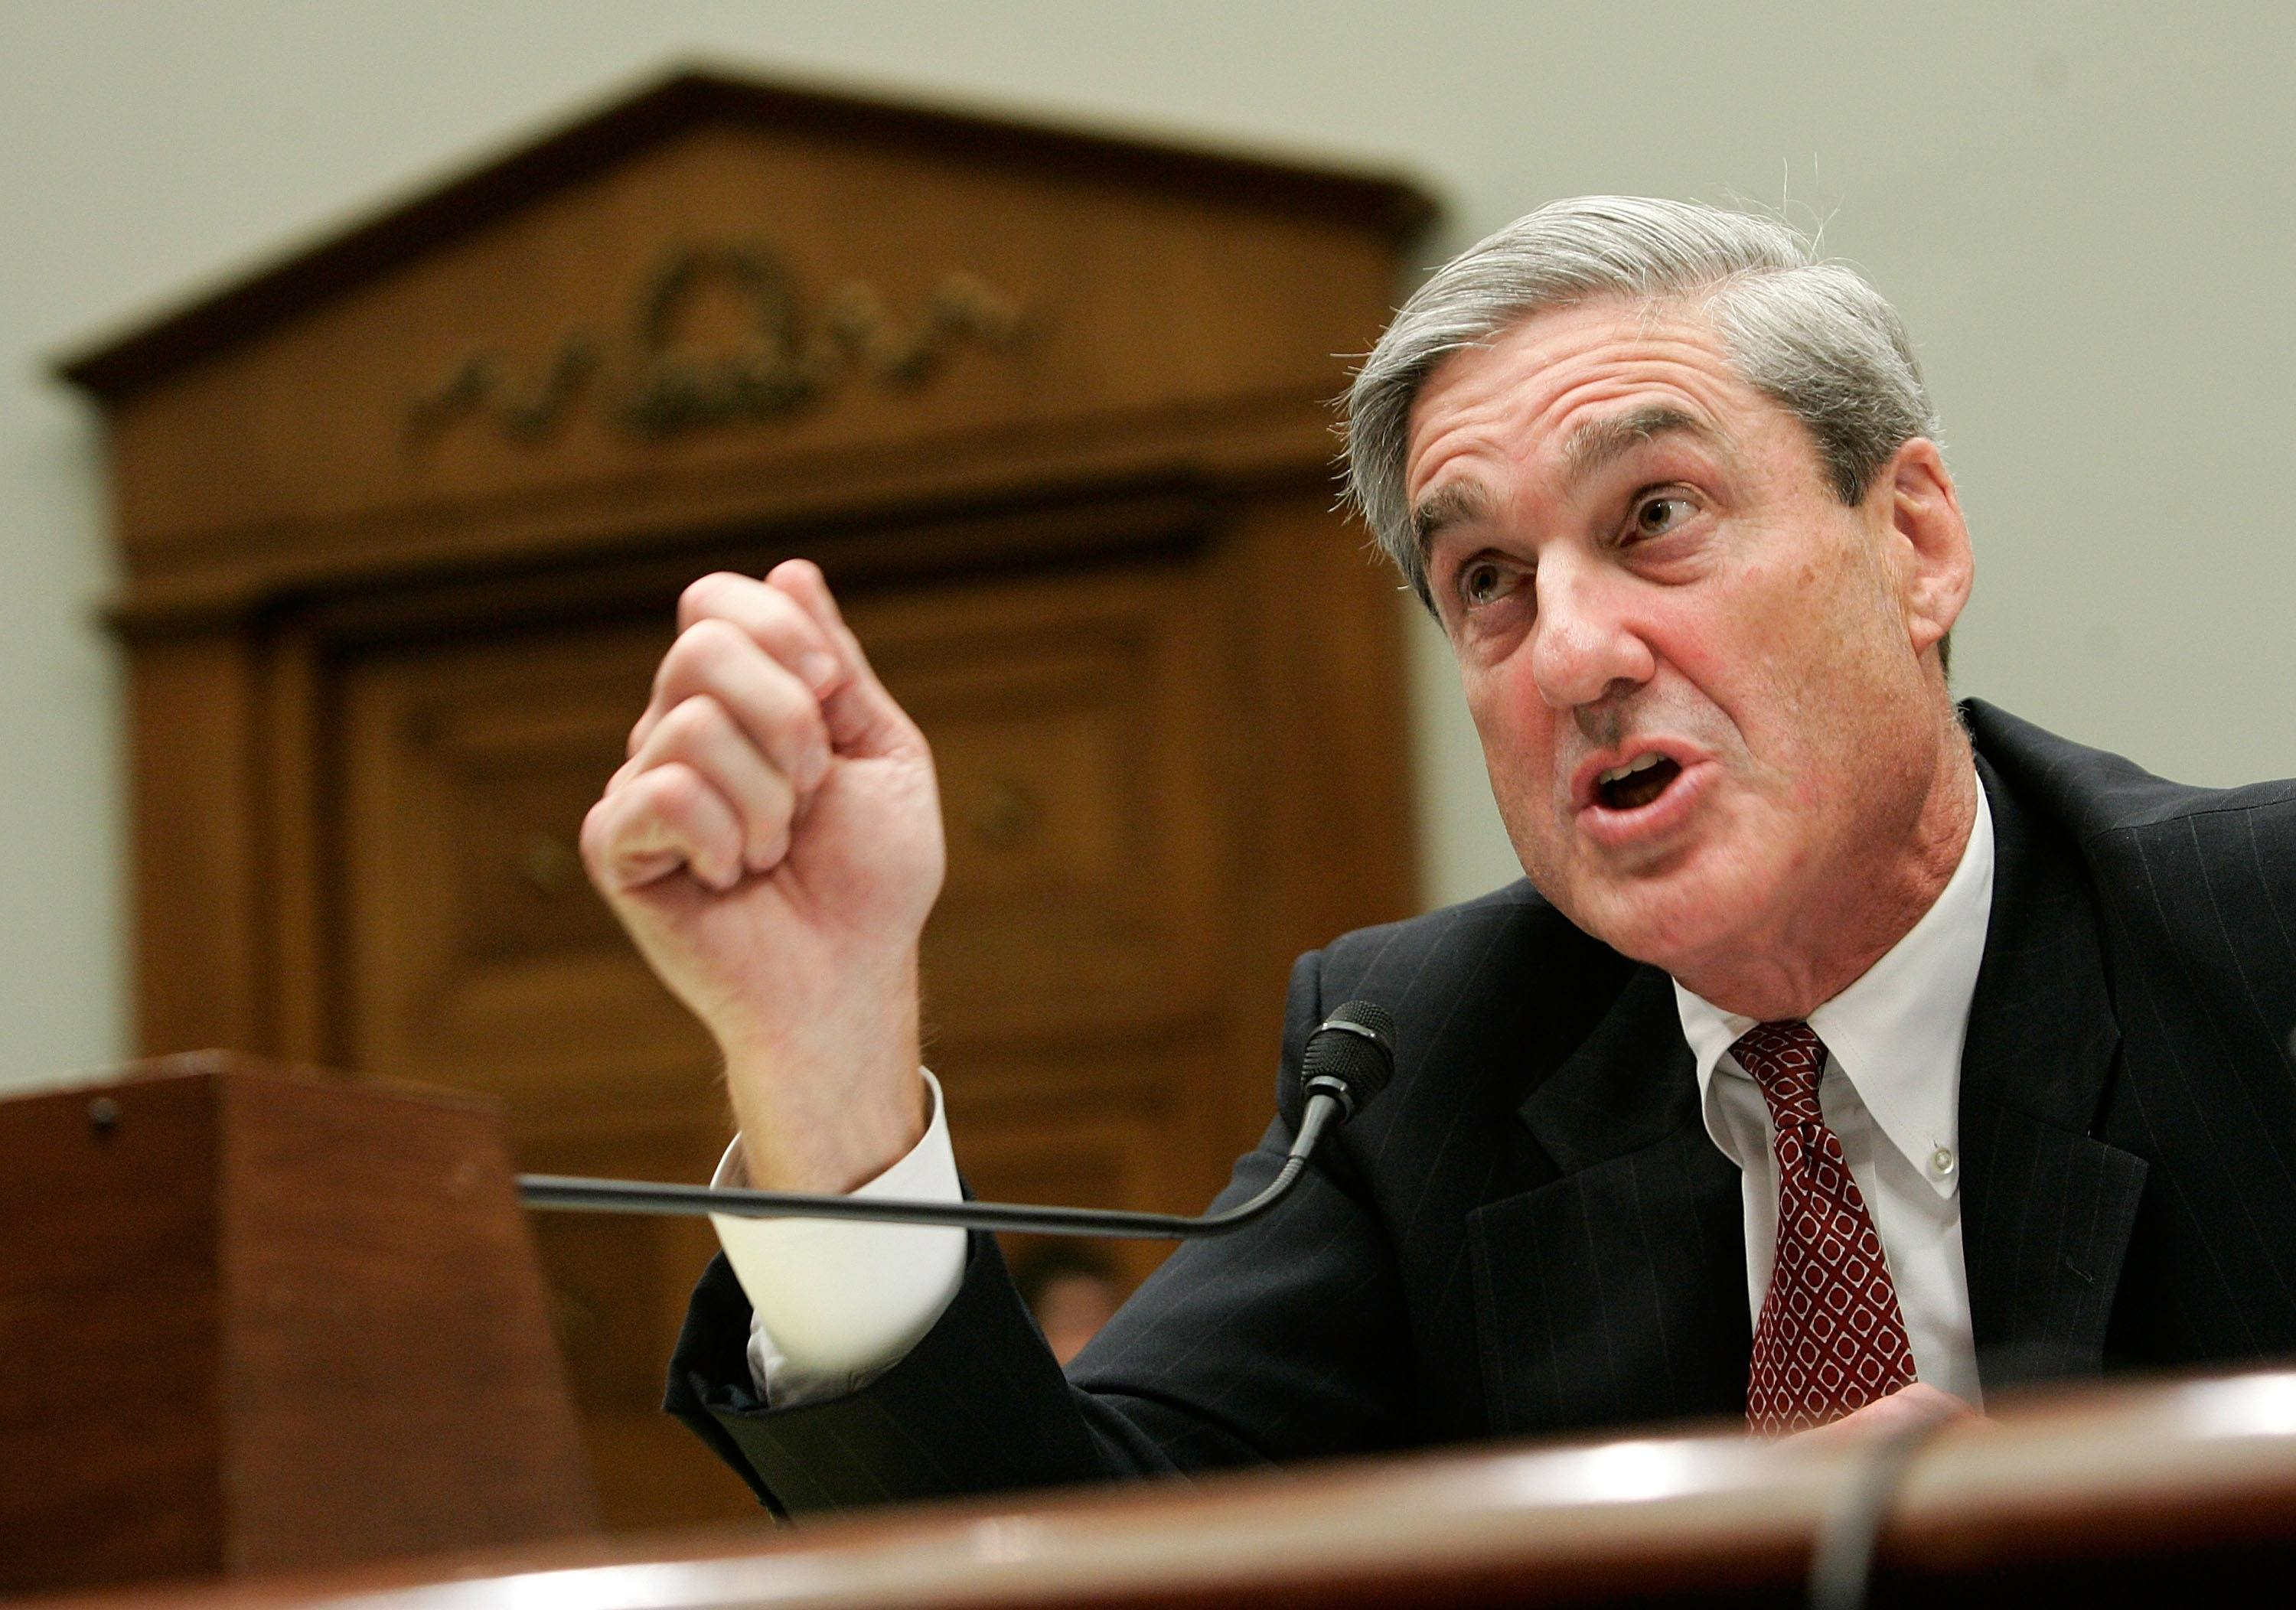 Mueller in a black suit screaming into a microphone.